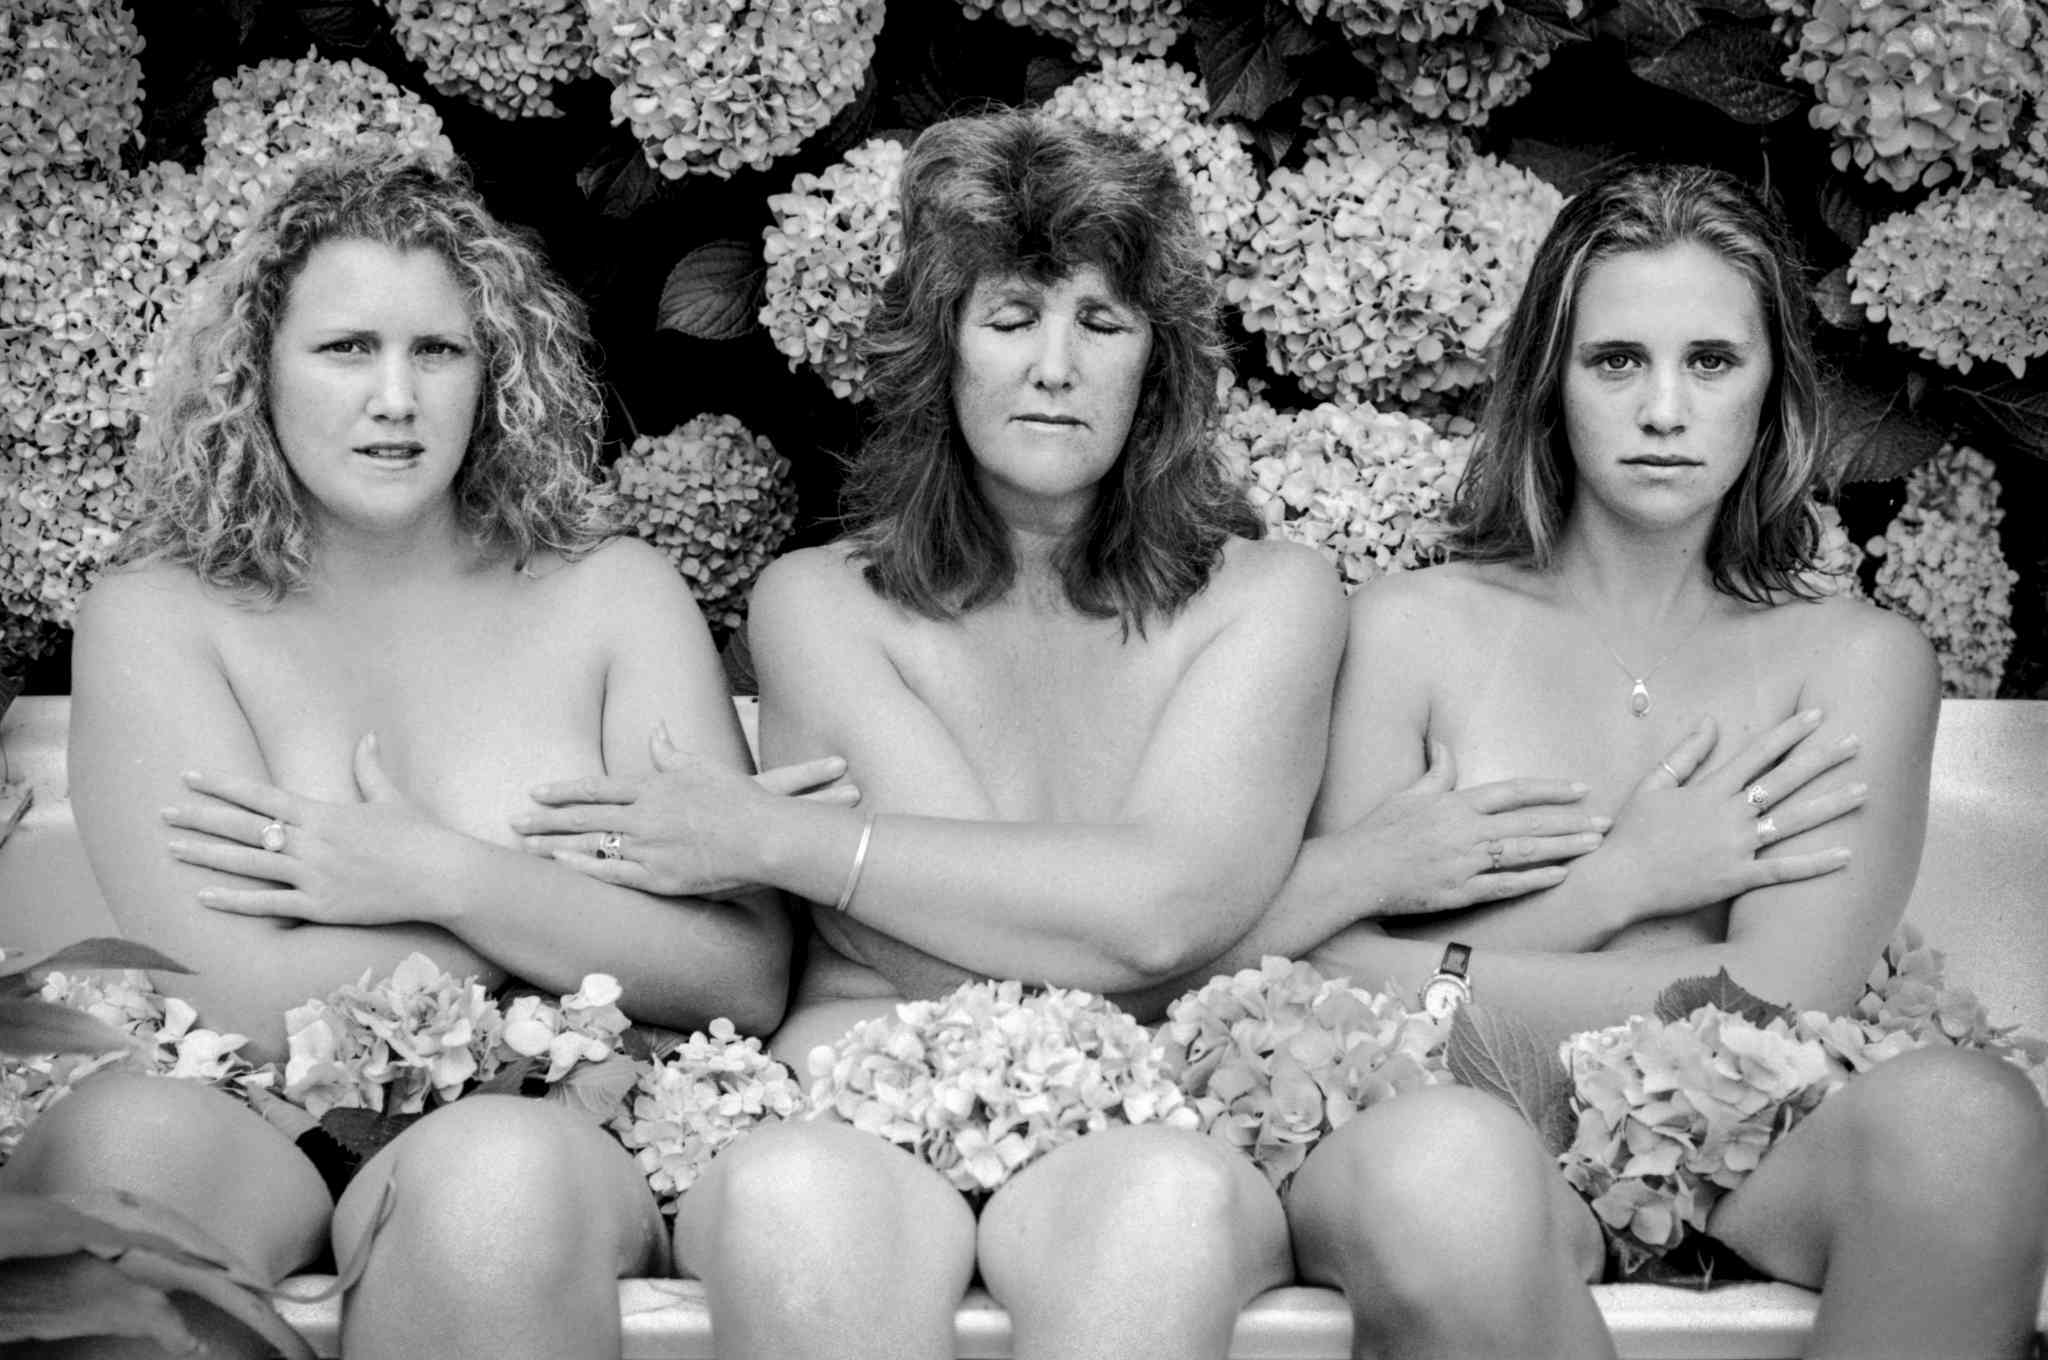 Mothers and Daughters exhibition, Mallacoota 1996. Gail Sands wi